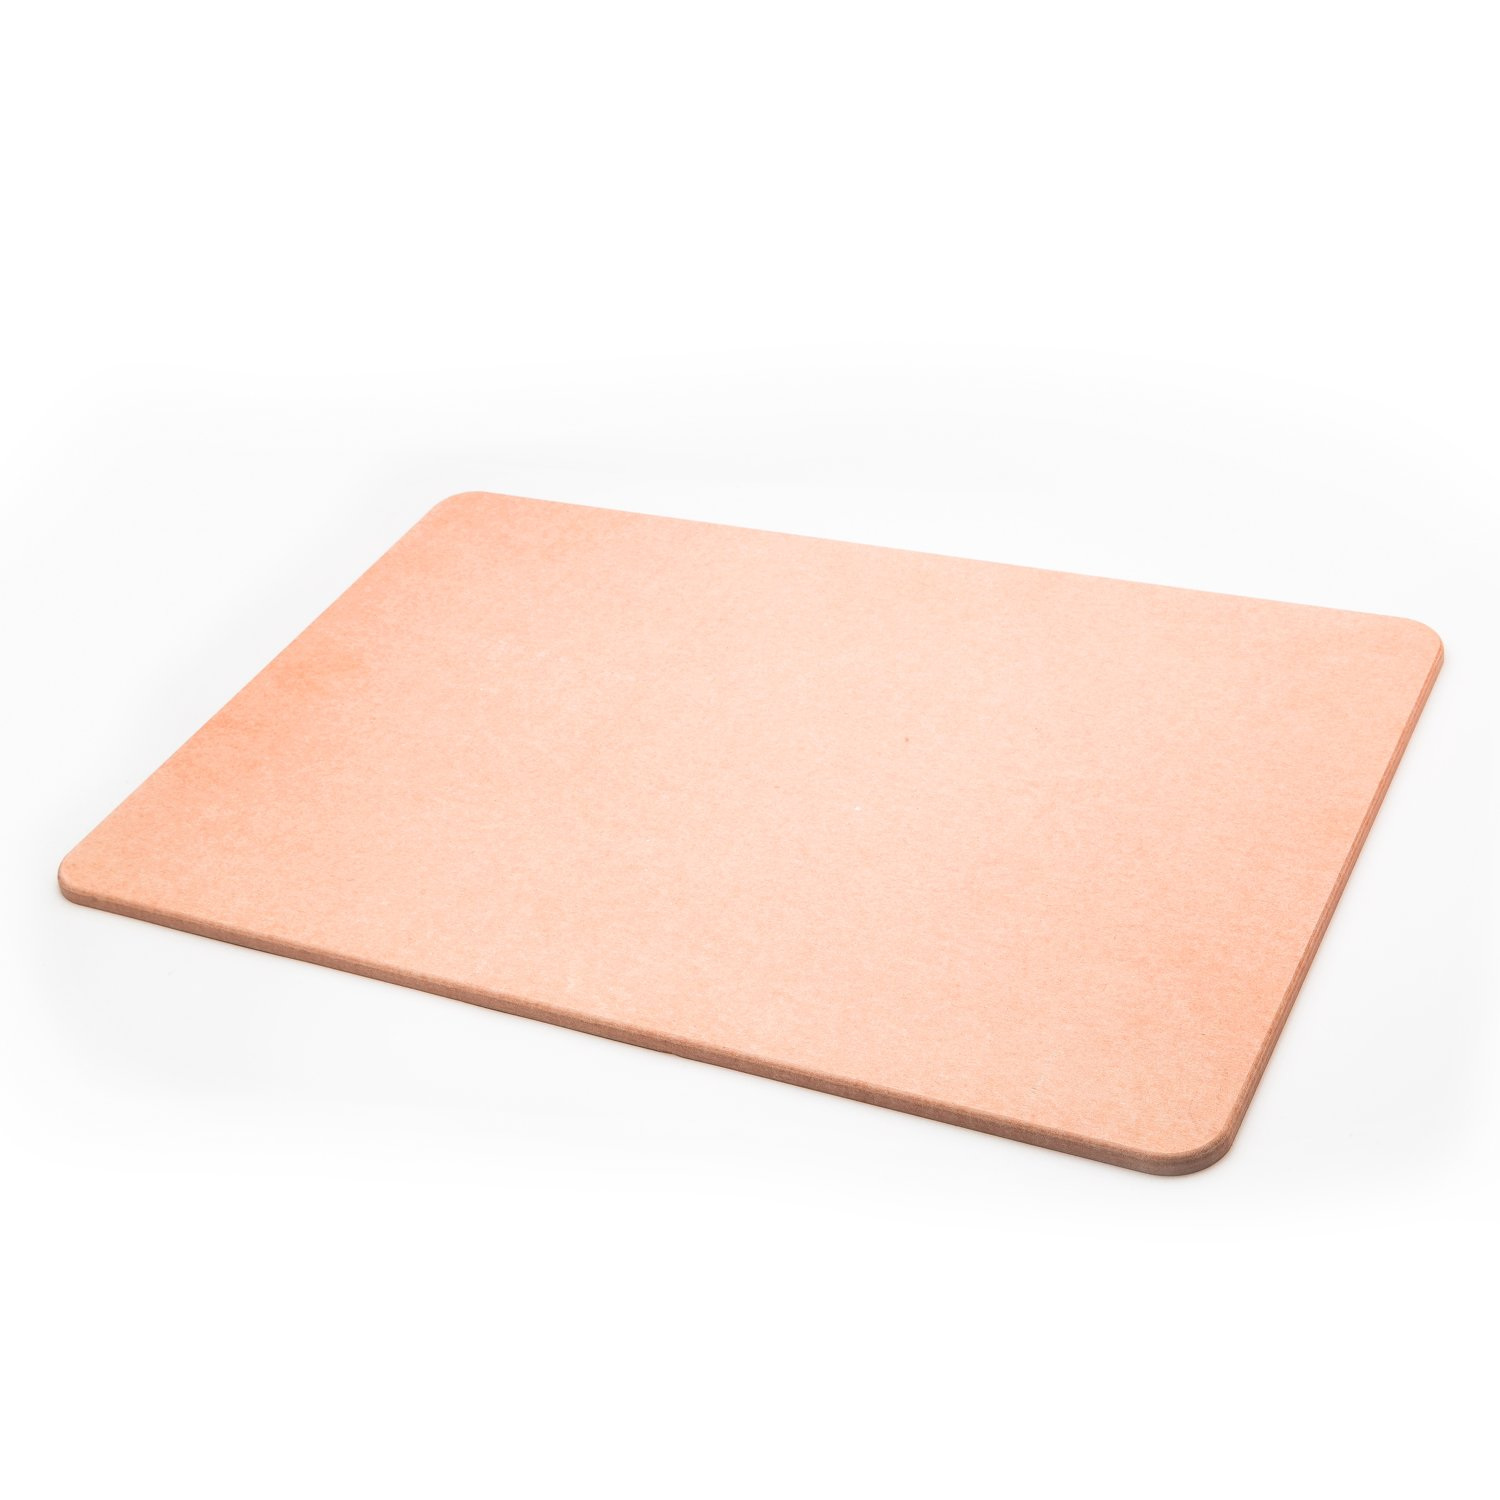 Diatomaceous Earth Bath Mat | Antibacterial Deodorant and Non-slip | Absorbent and Quick Drying | Japanese Design Perfect for Bathroom / Shower Floor (Pink 24-Inch-by-15-Inch)